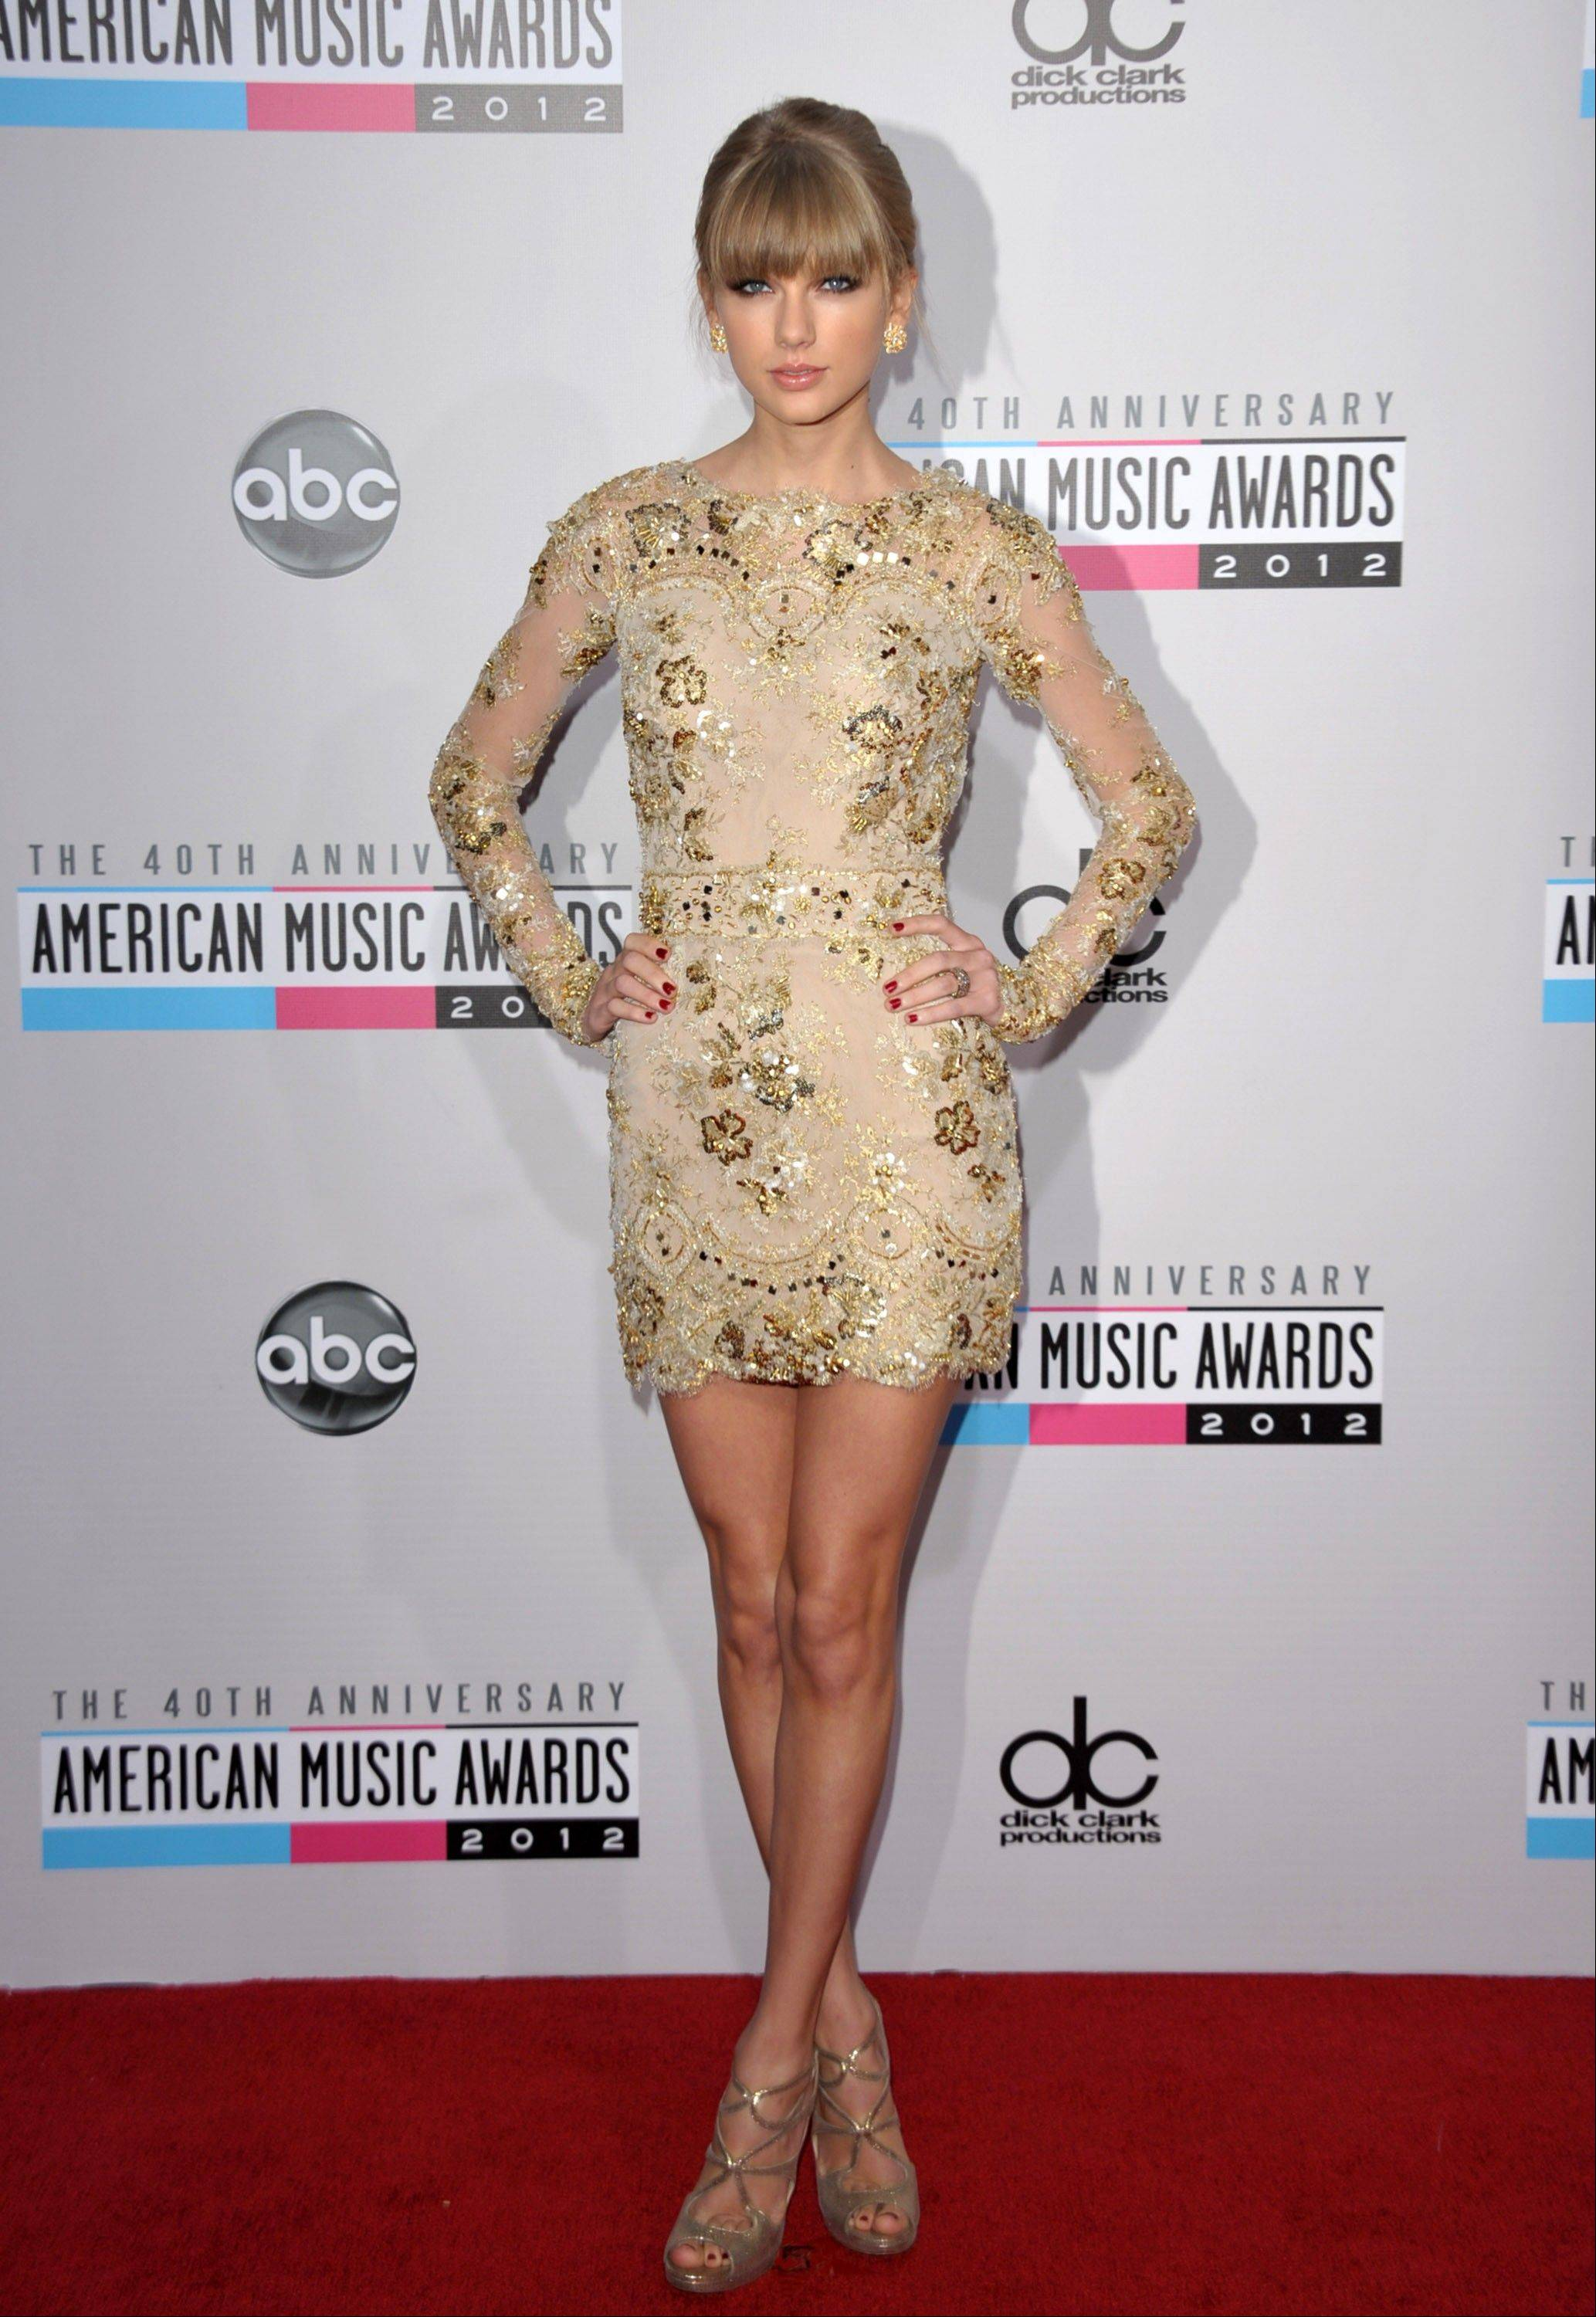 Country superstar Taylor Swift arrives at the 40th Anniversary American Music Awards on Sunday, Nov. 18, 2012, in Los Angeles.